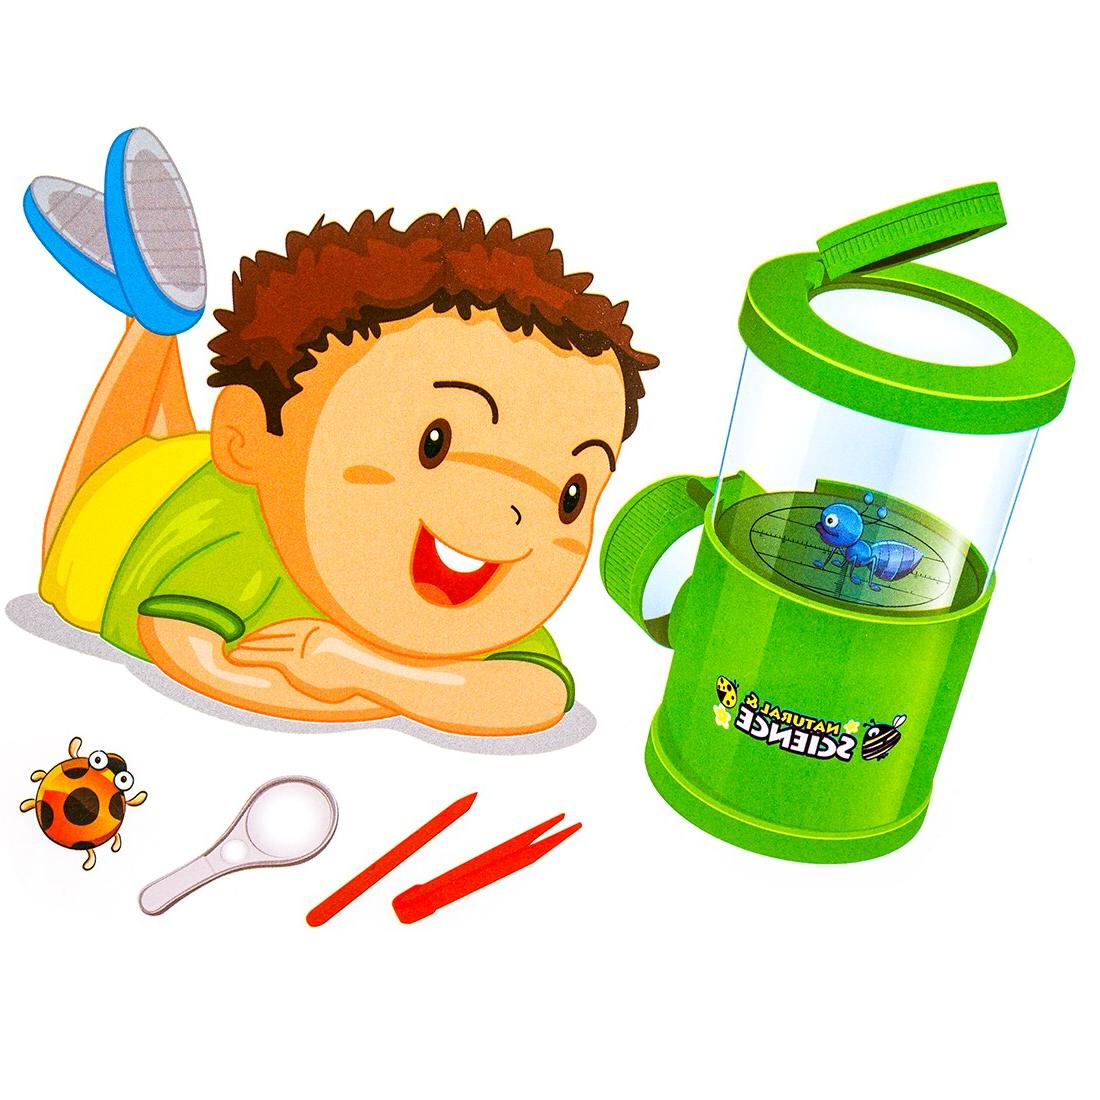 Bug Insect Biology Learning Development Education Children c